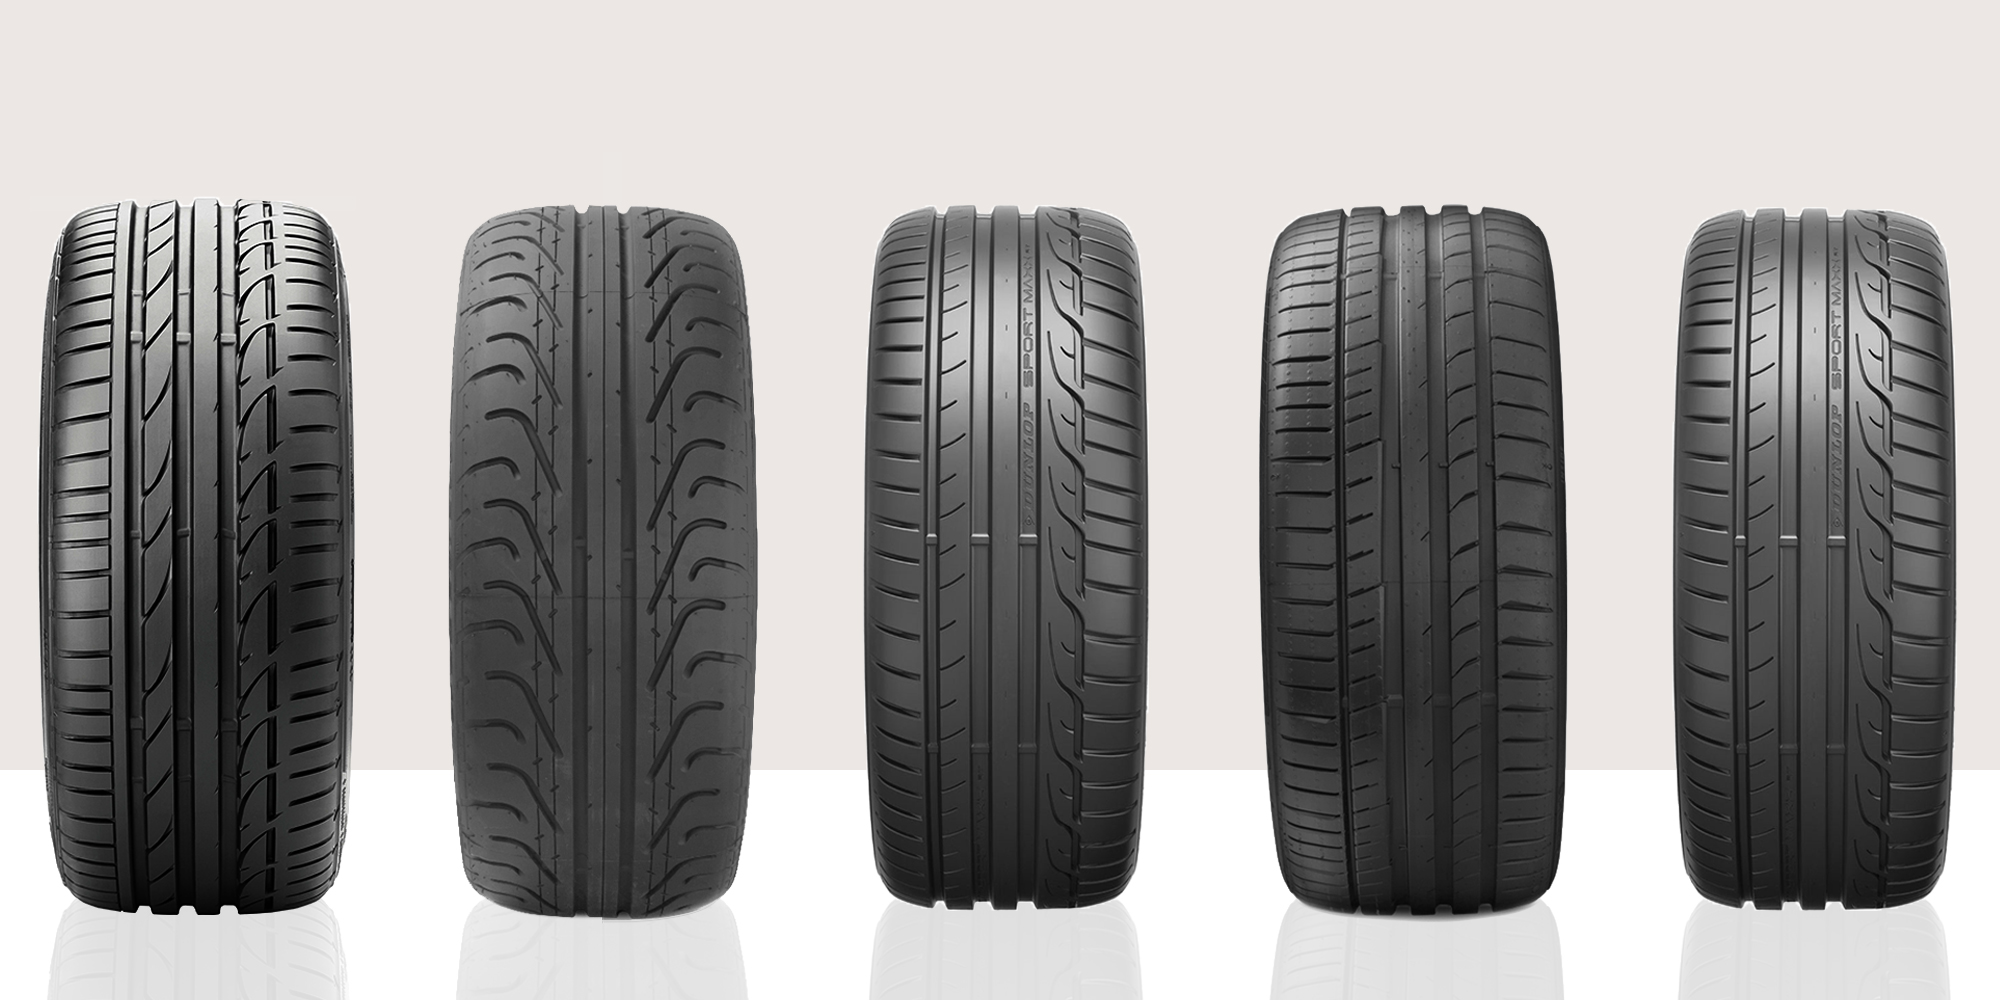 Best Performance Tires >> 6 Best Performance Tires for Your Sports Car in 2018